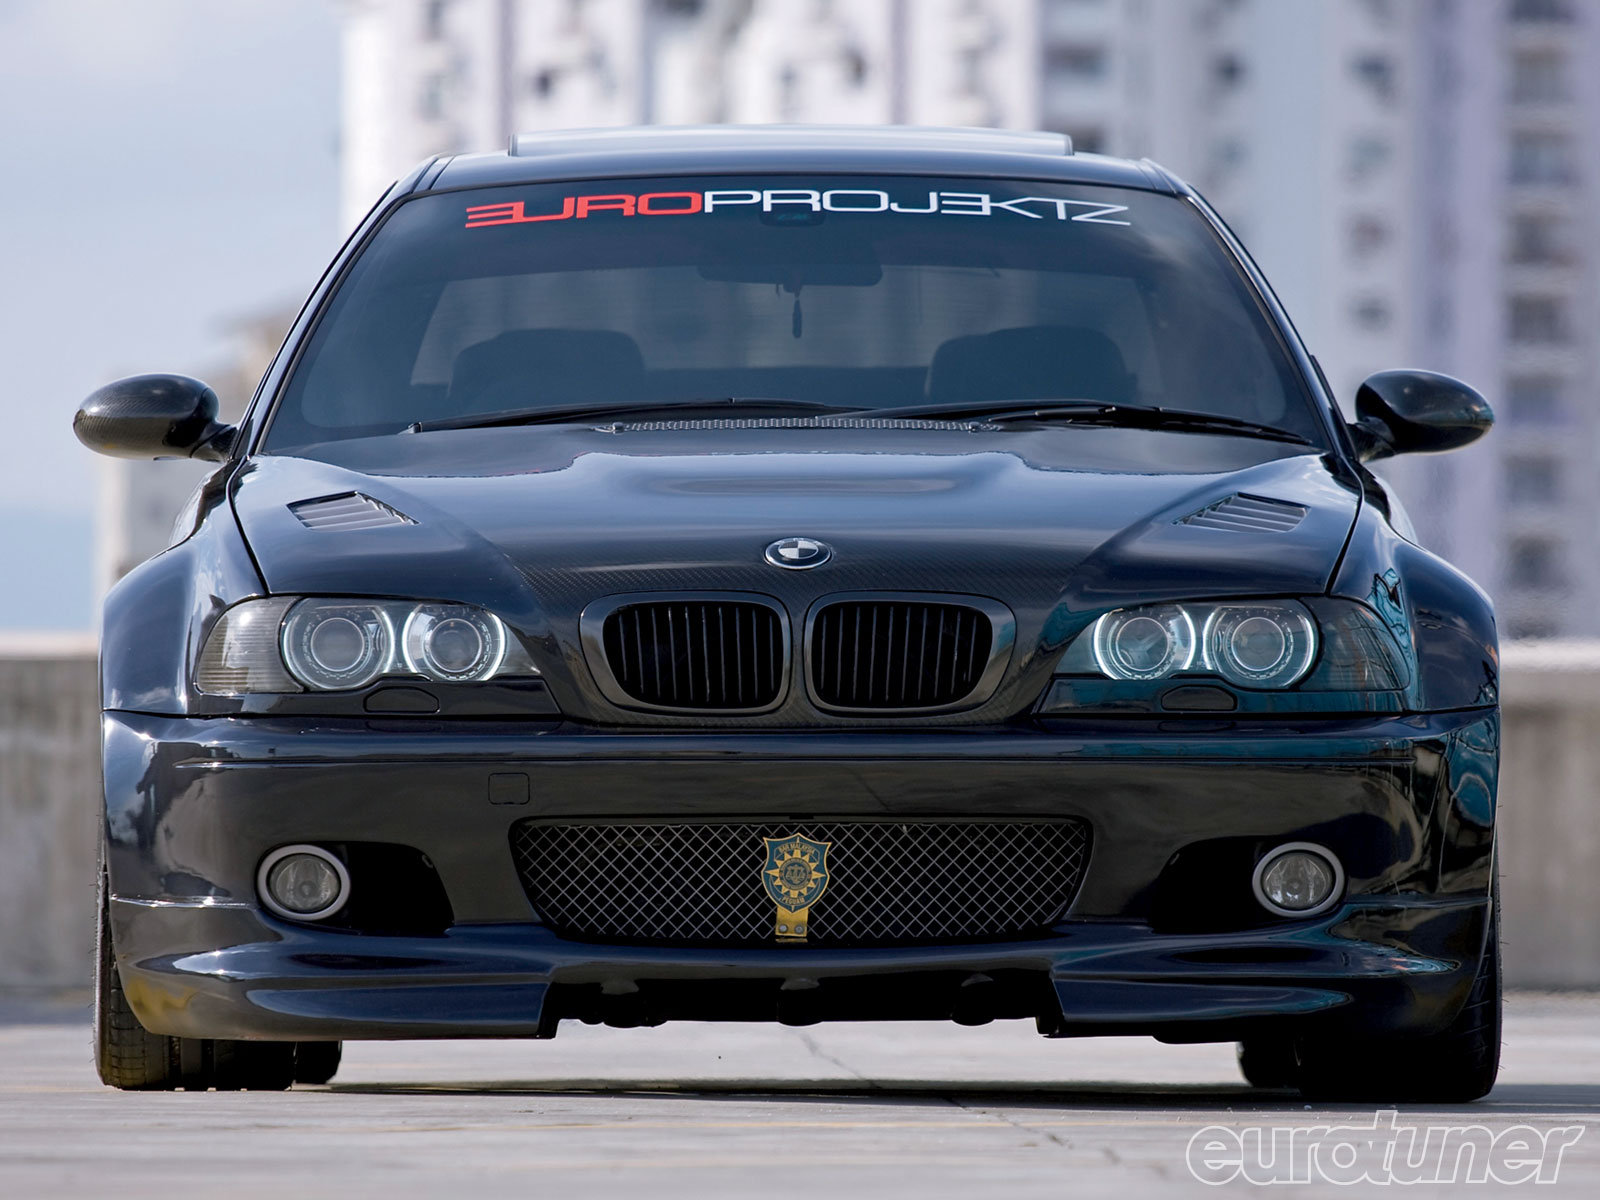 2001 Bmw 325Ci Projector Headlights Photo 5